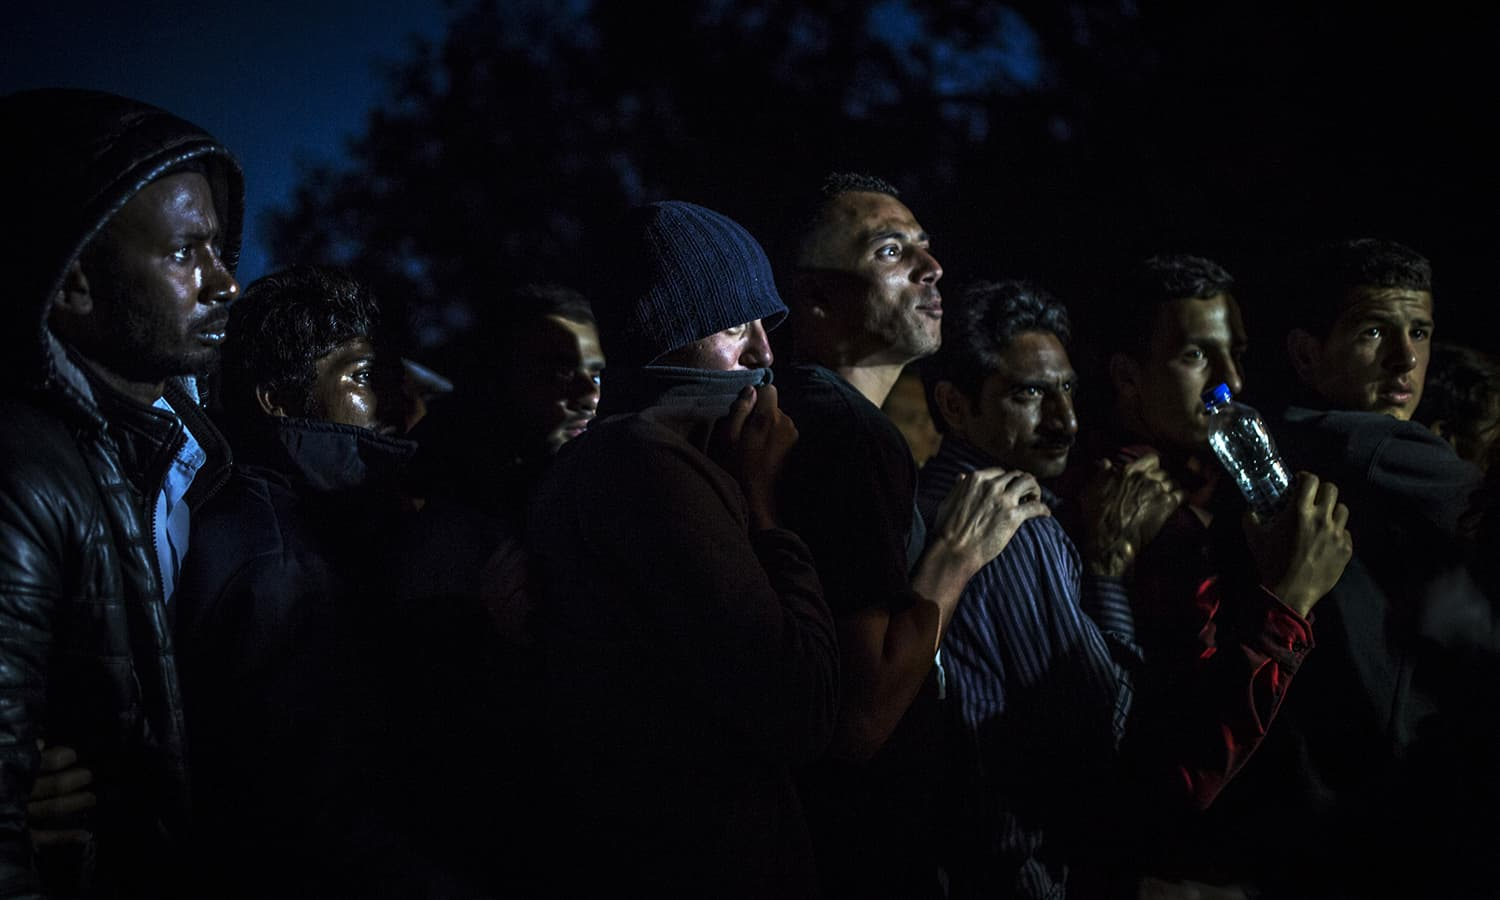 Migrants, many of them Pakistani, line up for dinner at the No Borders camp on the island of Lesbos on April 7, 2016, which is run by volunteers. Although already warned they would be transferred to a detention center on the island, they've been granted a reprieve by the local mayor for an additional week.